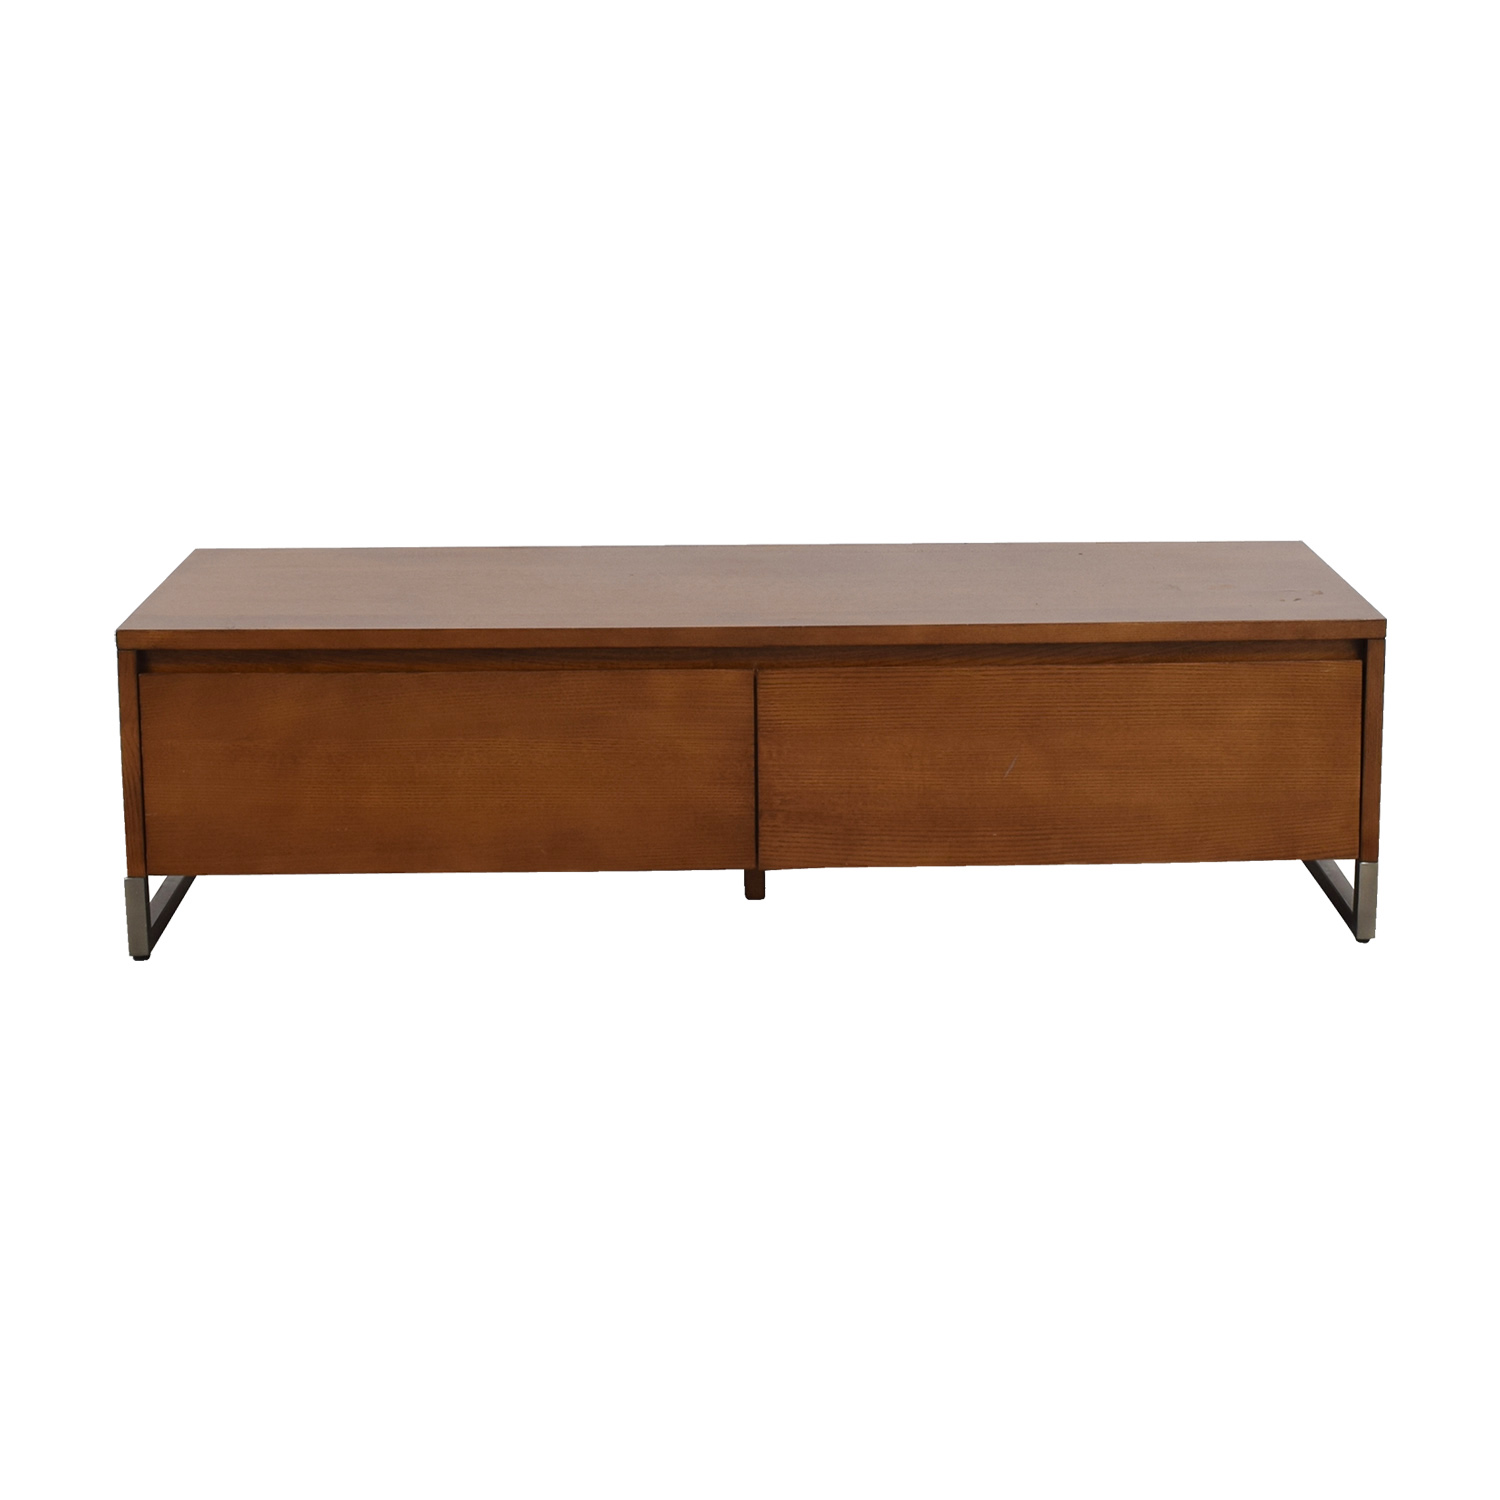 West Elm West Elm Hudson Media Console on sale